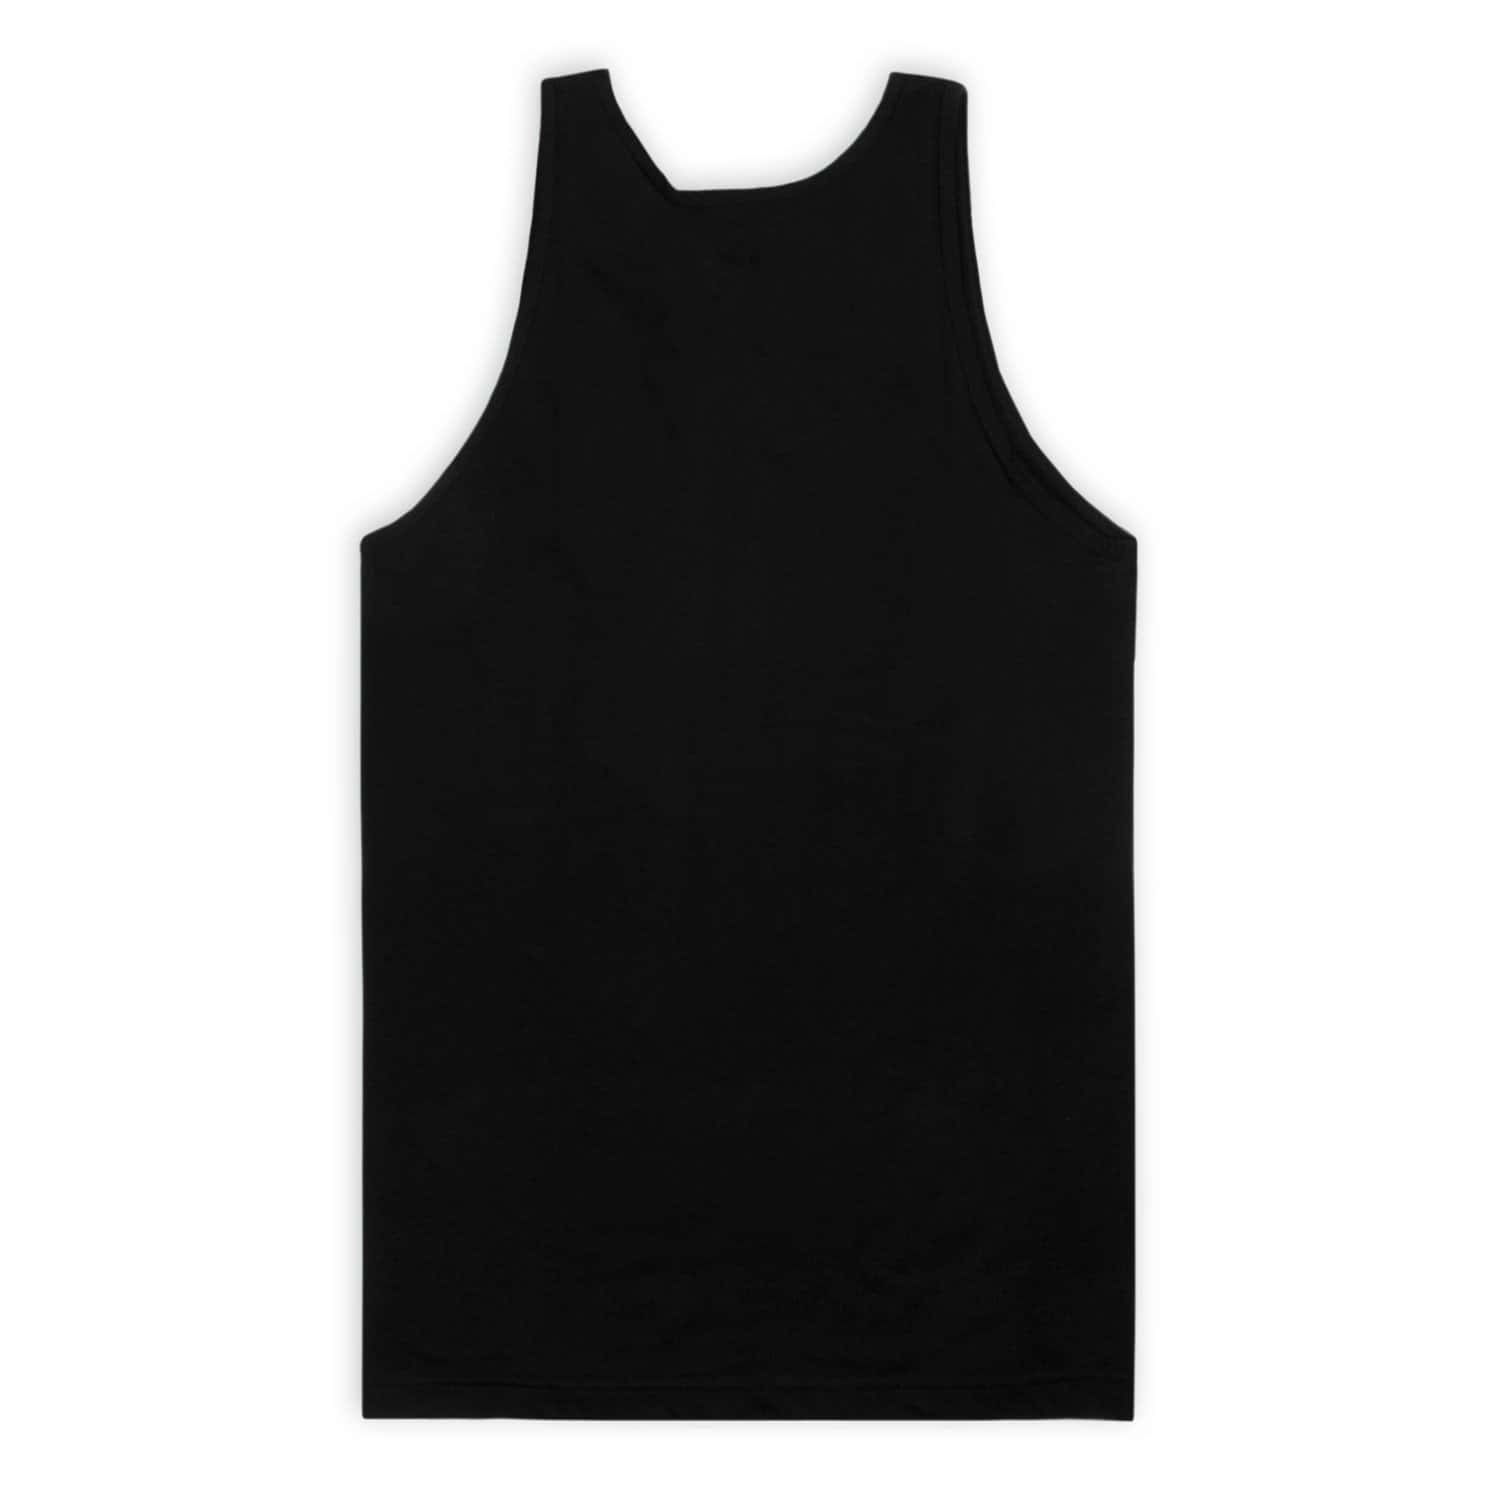 116 'Red Label' Tank